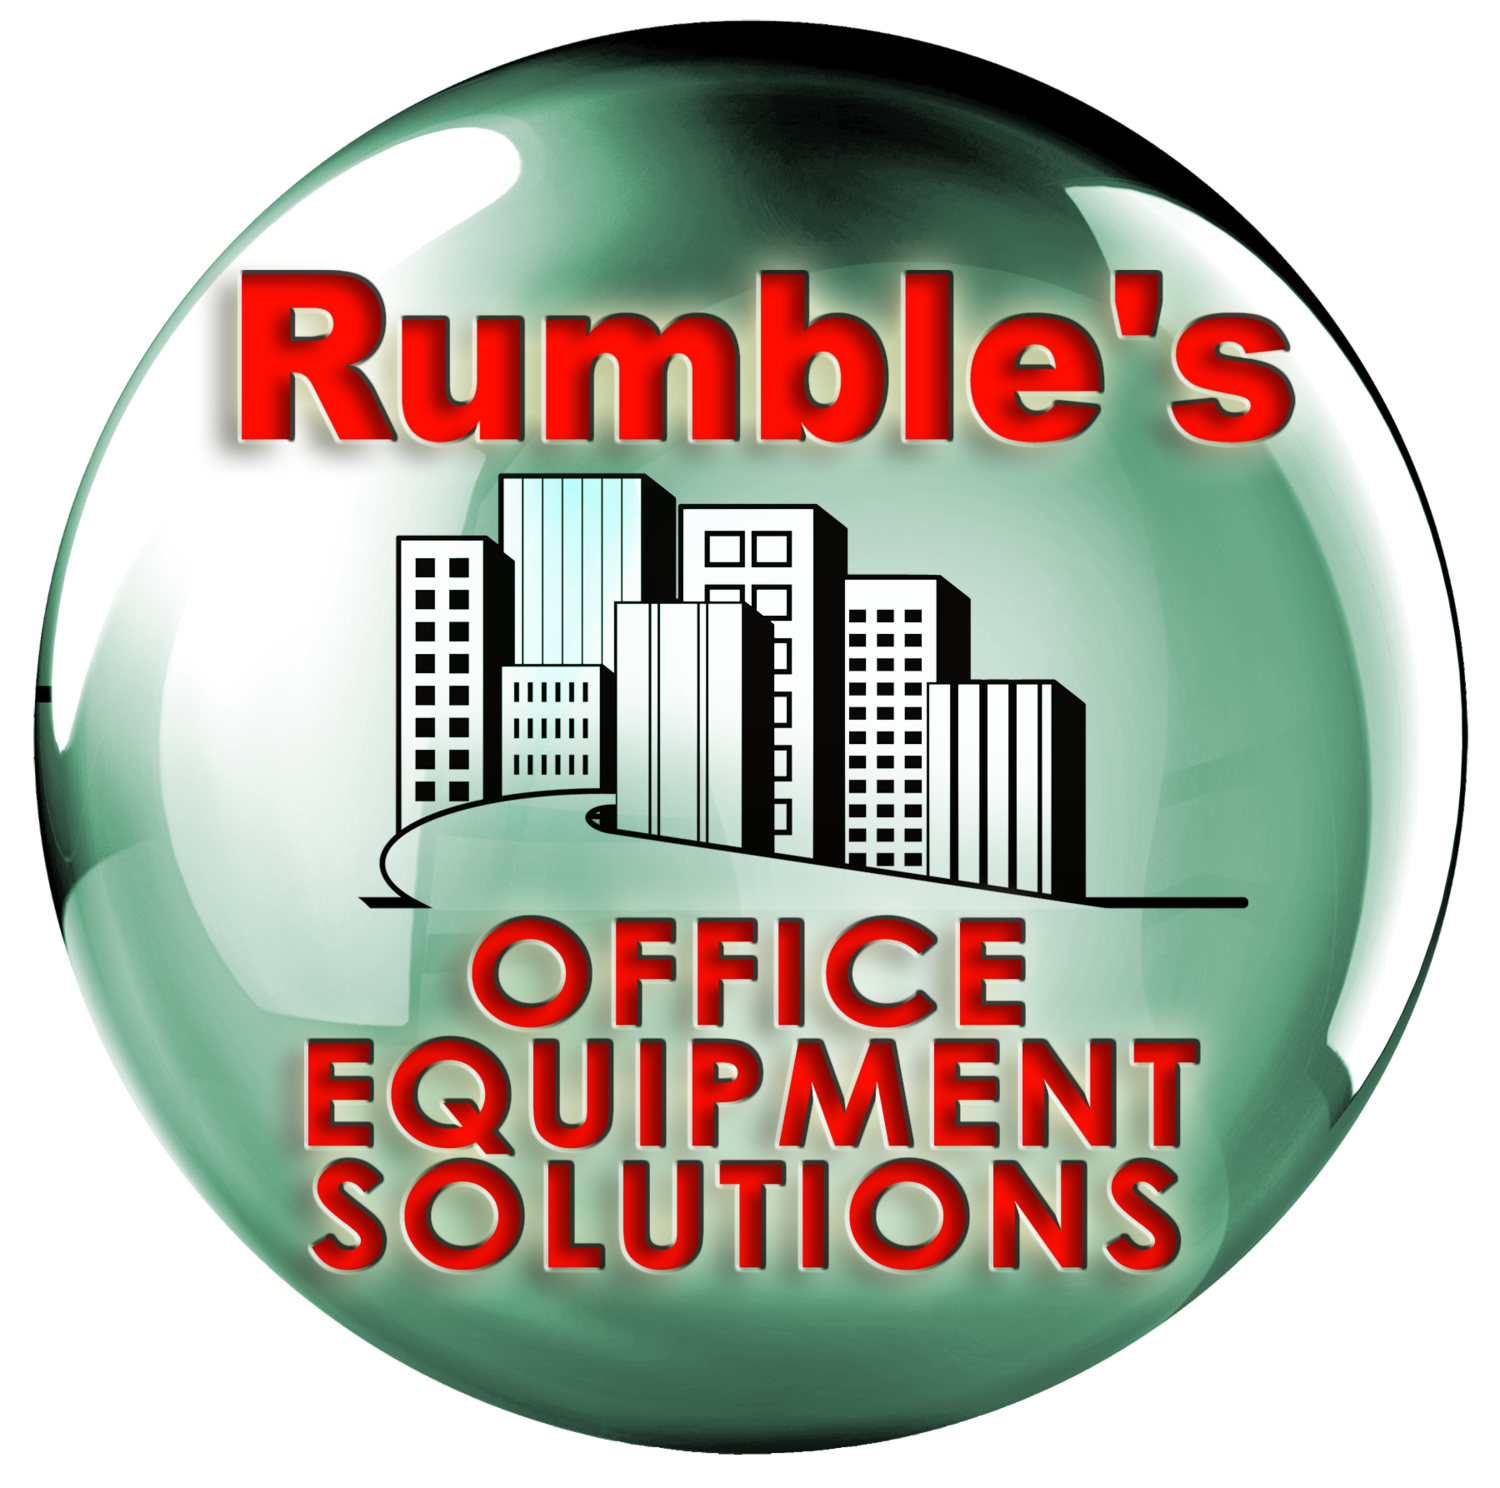 Office Equipment Solutions : Tallahassee Kyocera Copier / Printer / Scanner / Fax